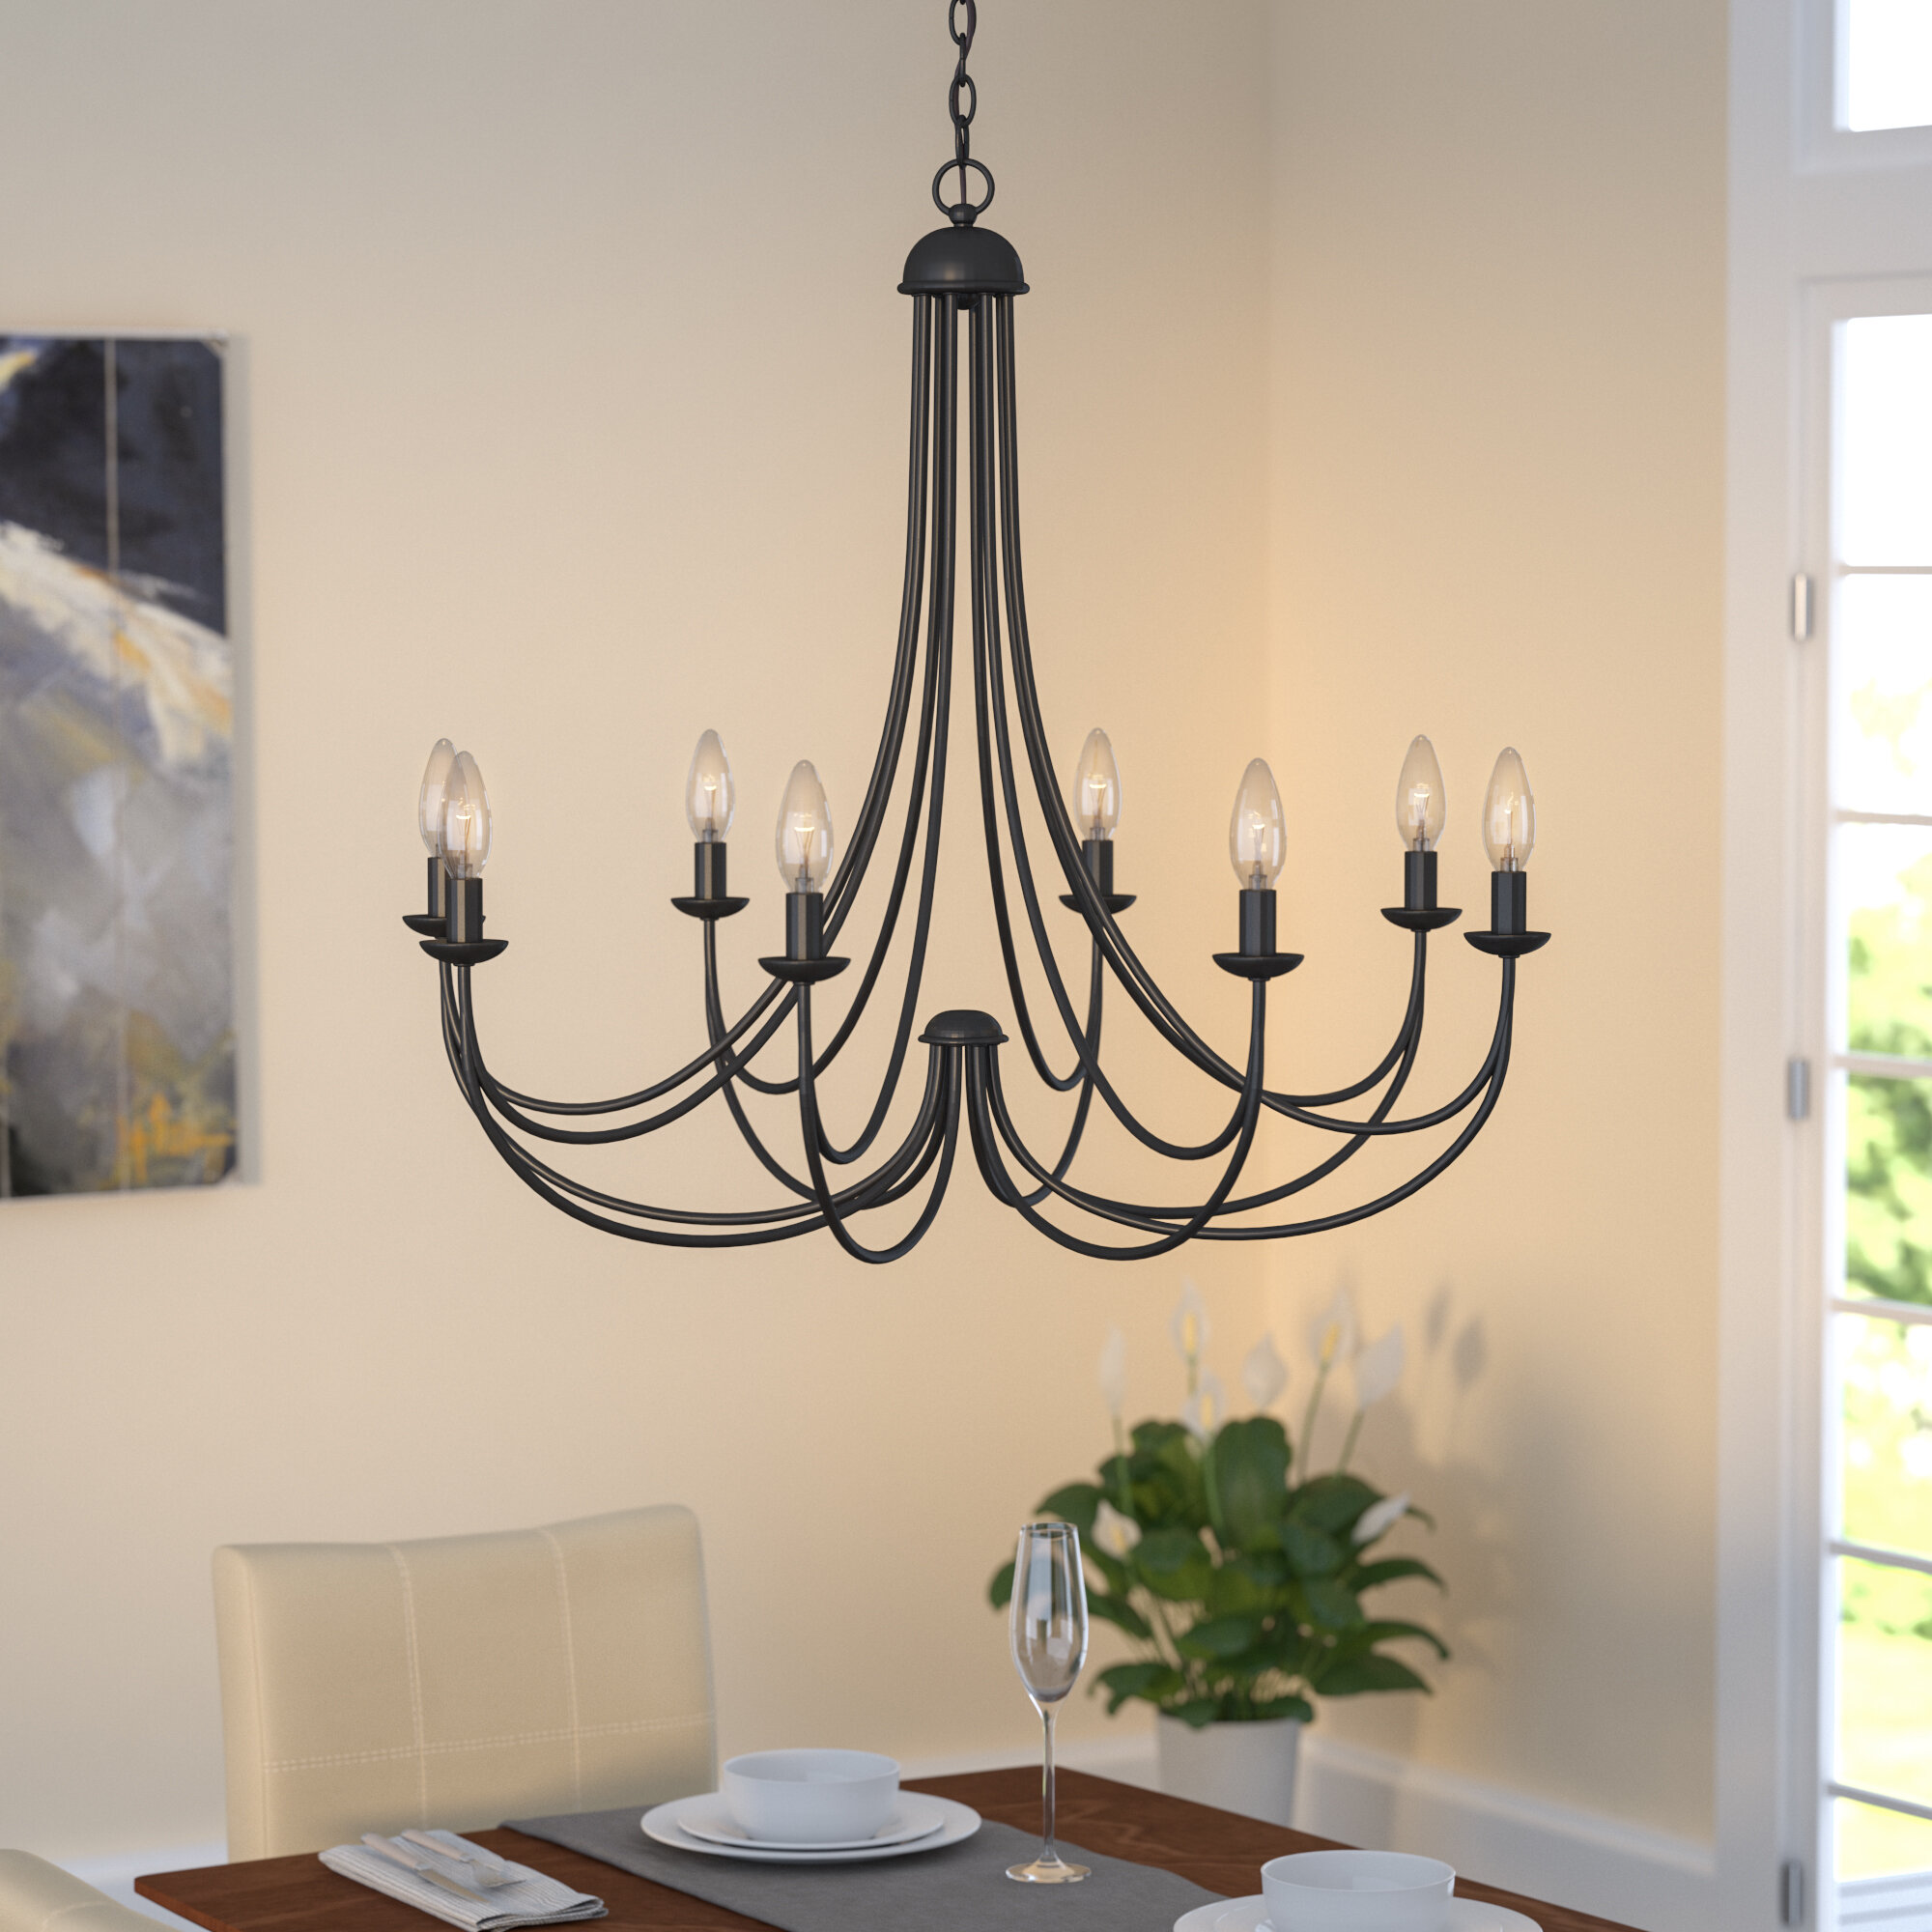 Three Posts Buckland 8 Light Candle Style Chandelier & Reviews